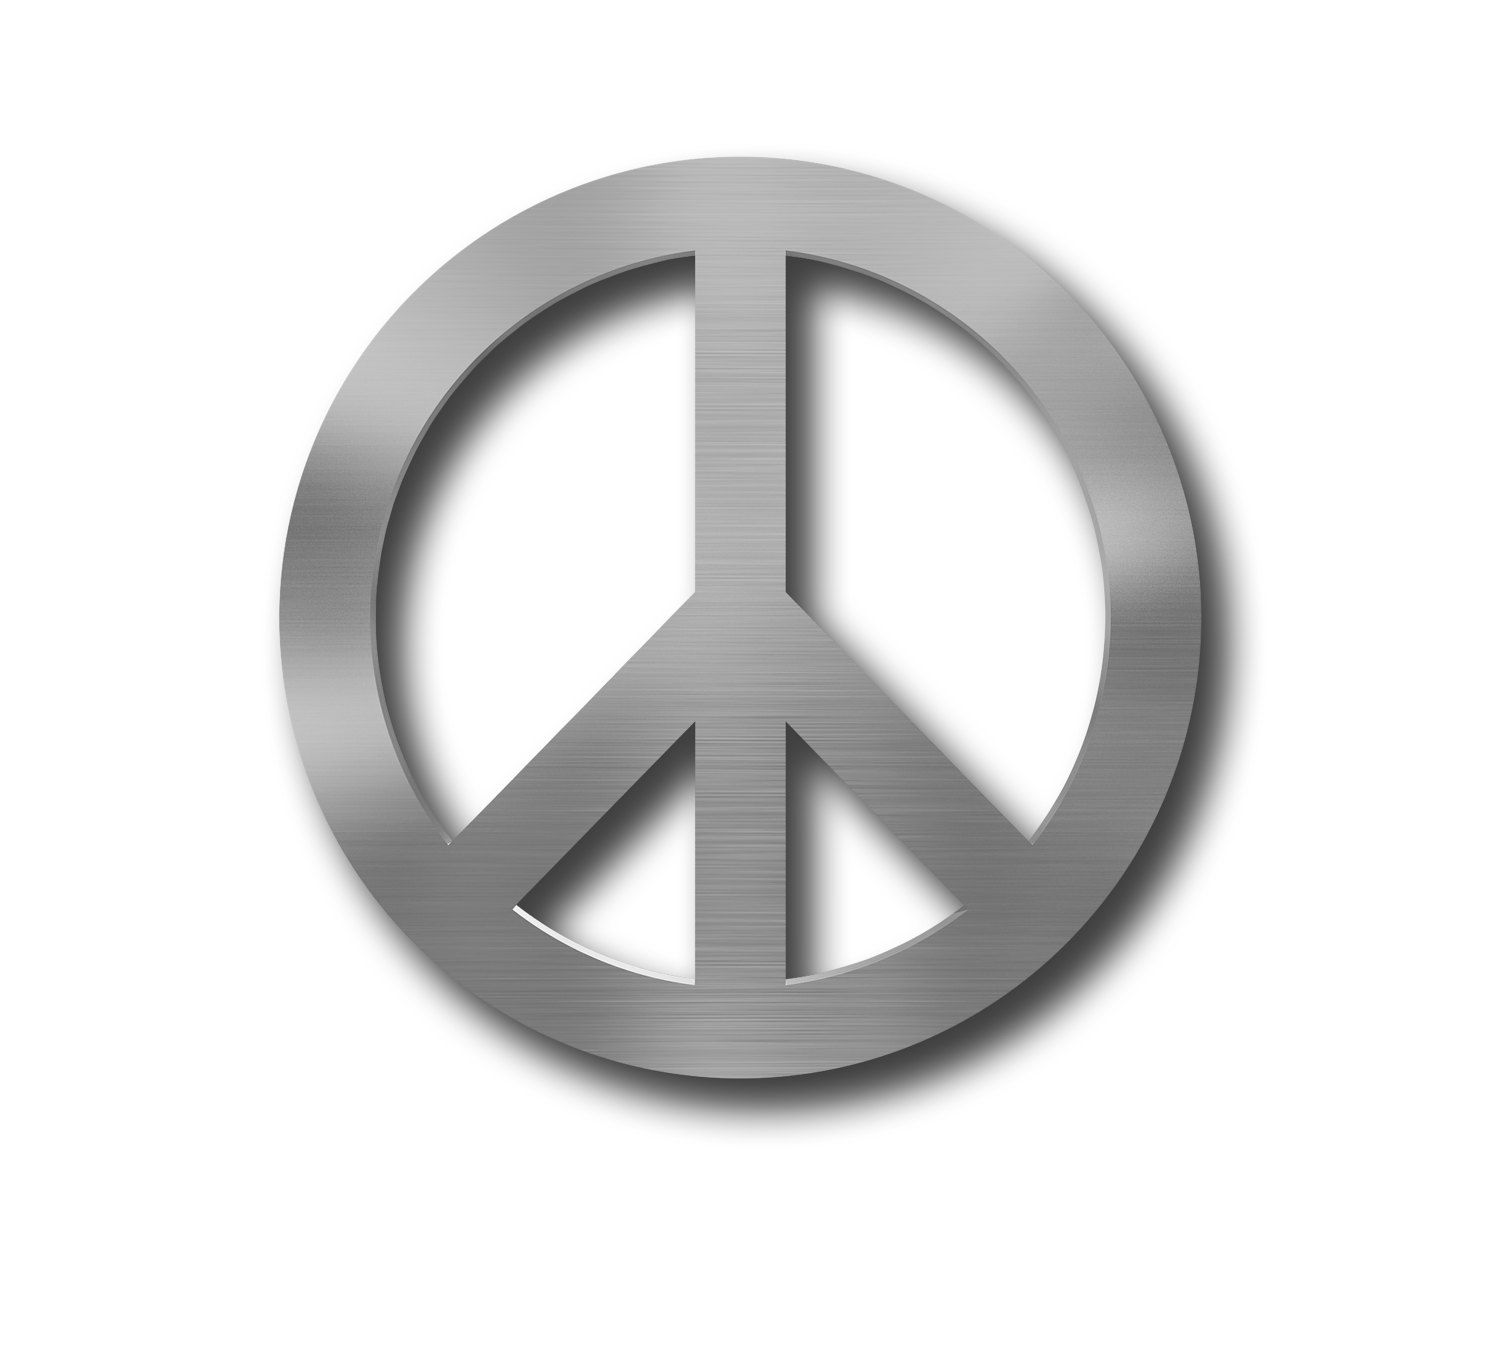 Peace Symbol Metal Wall Art Circle Sign Decor Large